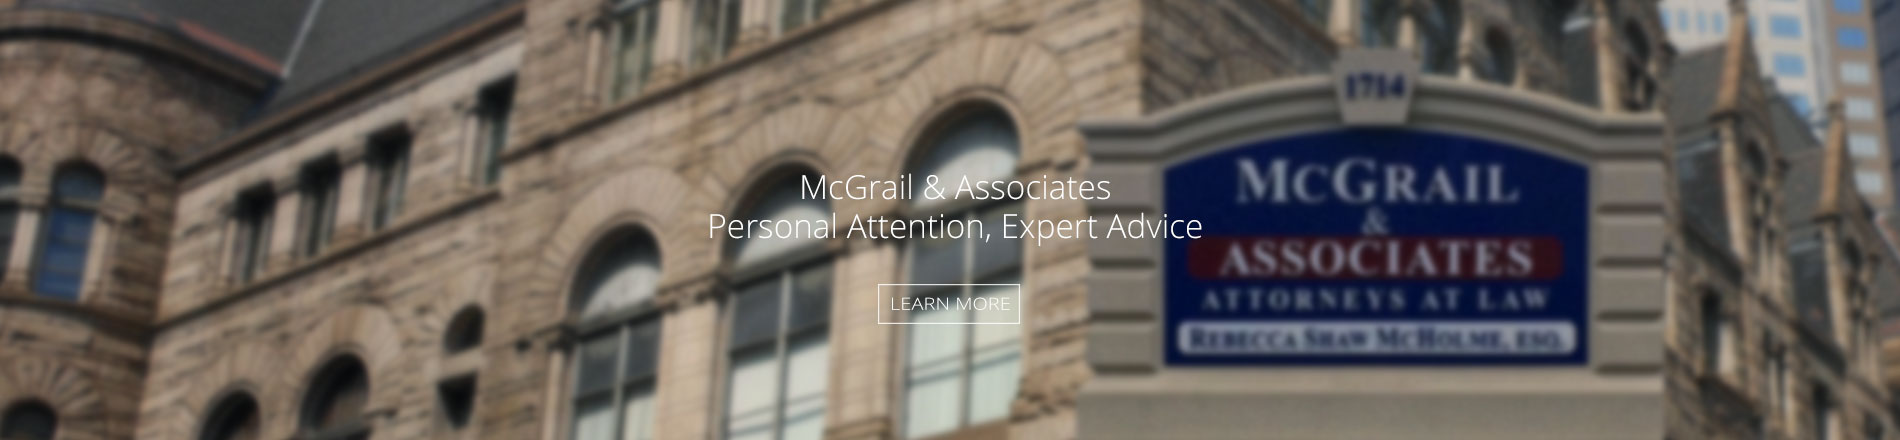 McGrail & Associates a Pittsburgh Law Firm